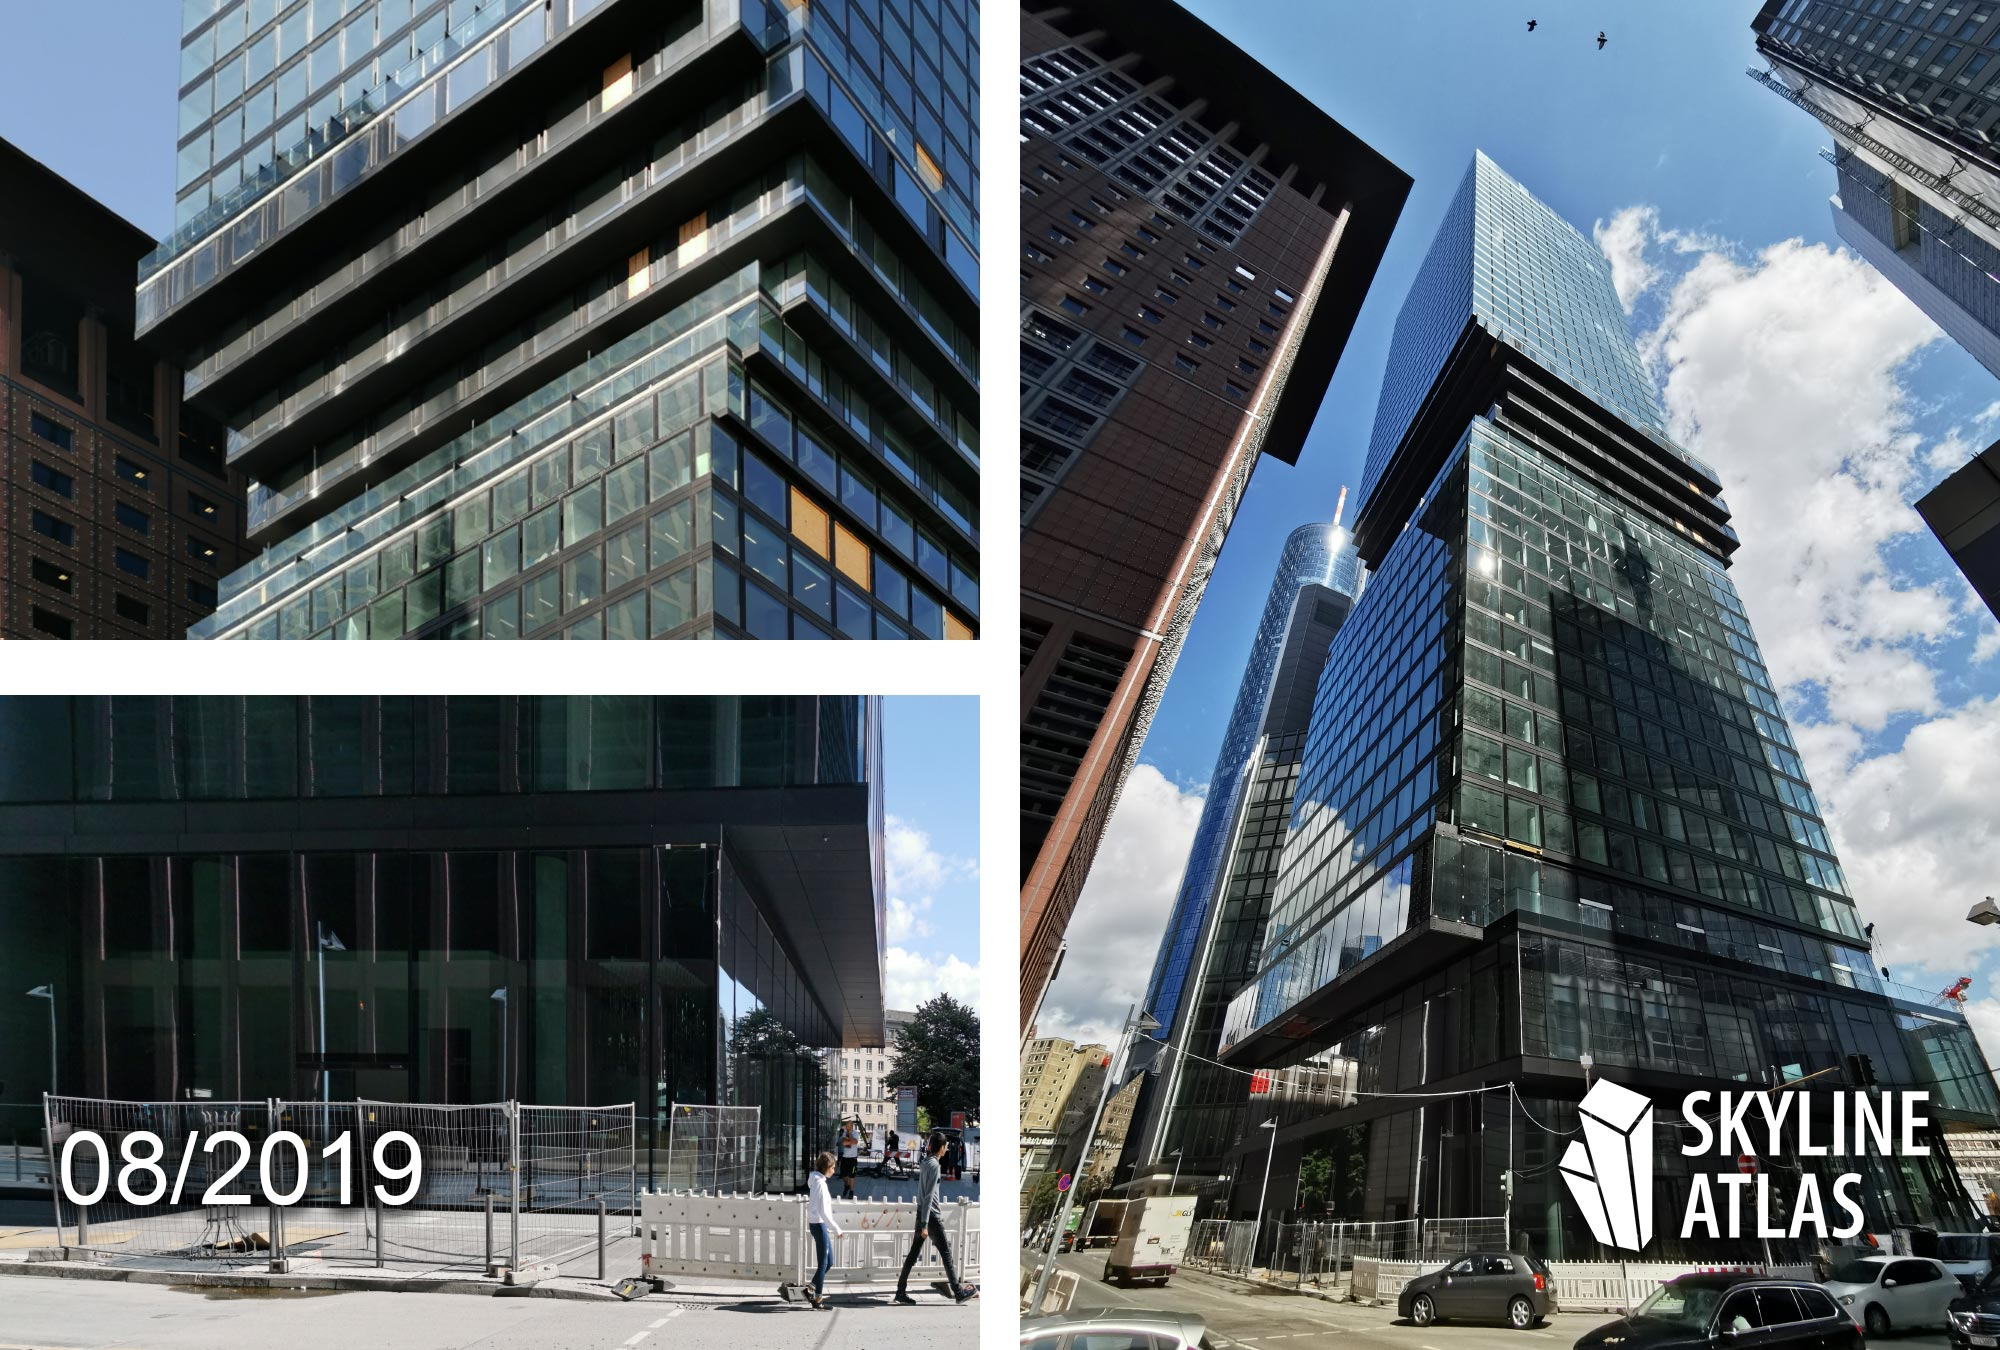 OmniTurm in Frankfurt - Omni Tower in the CBD - mixed-use skyscraper designed by BIG Bjarke Ingels Architects - construction site as of August 2019